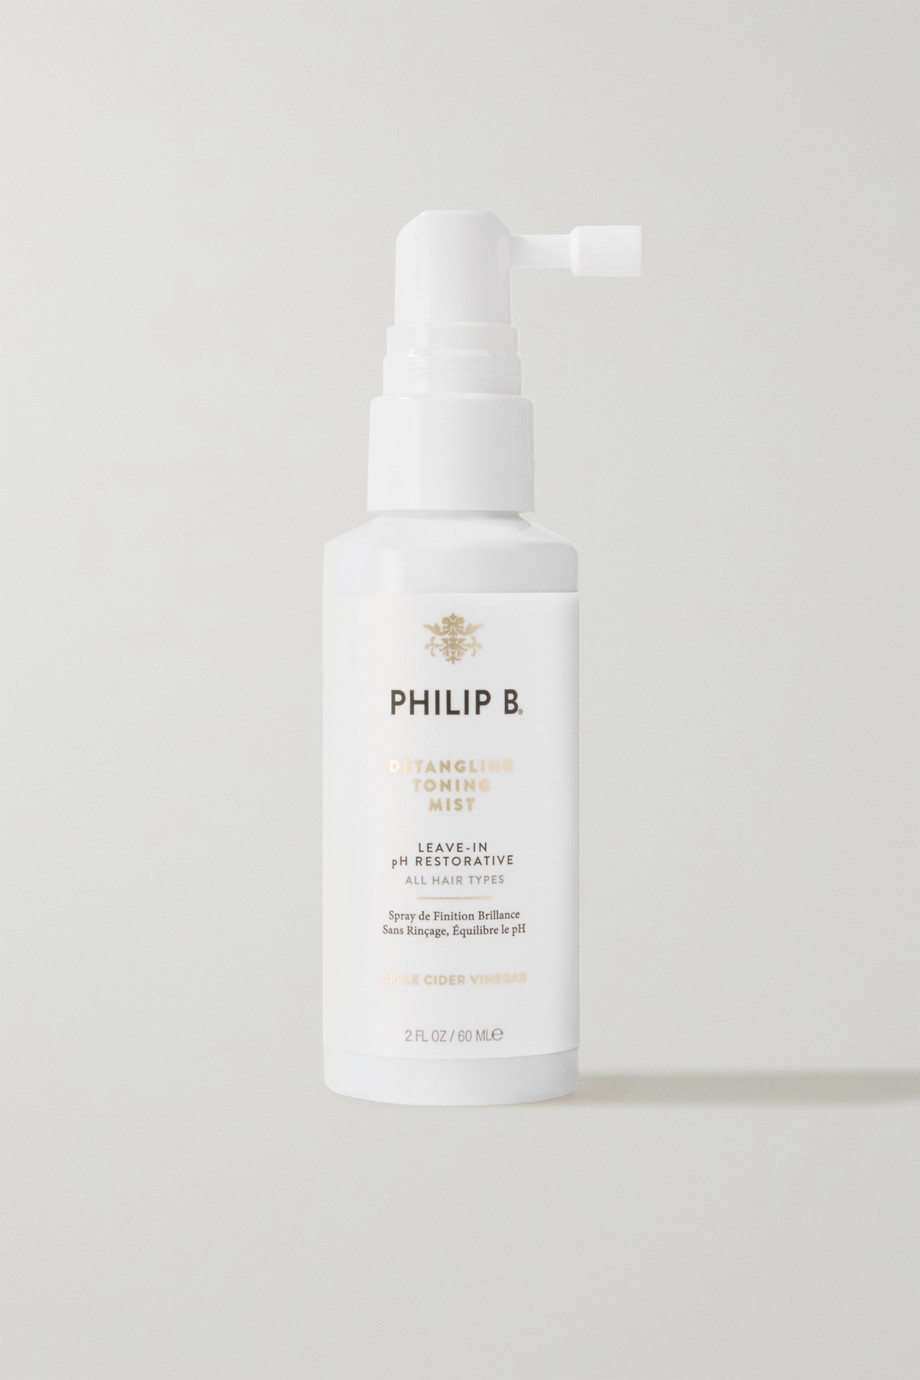 Philip B Detangling Toning Mist, 60 ml – Leave-In-Conditioner